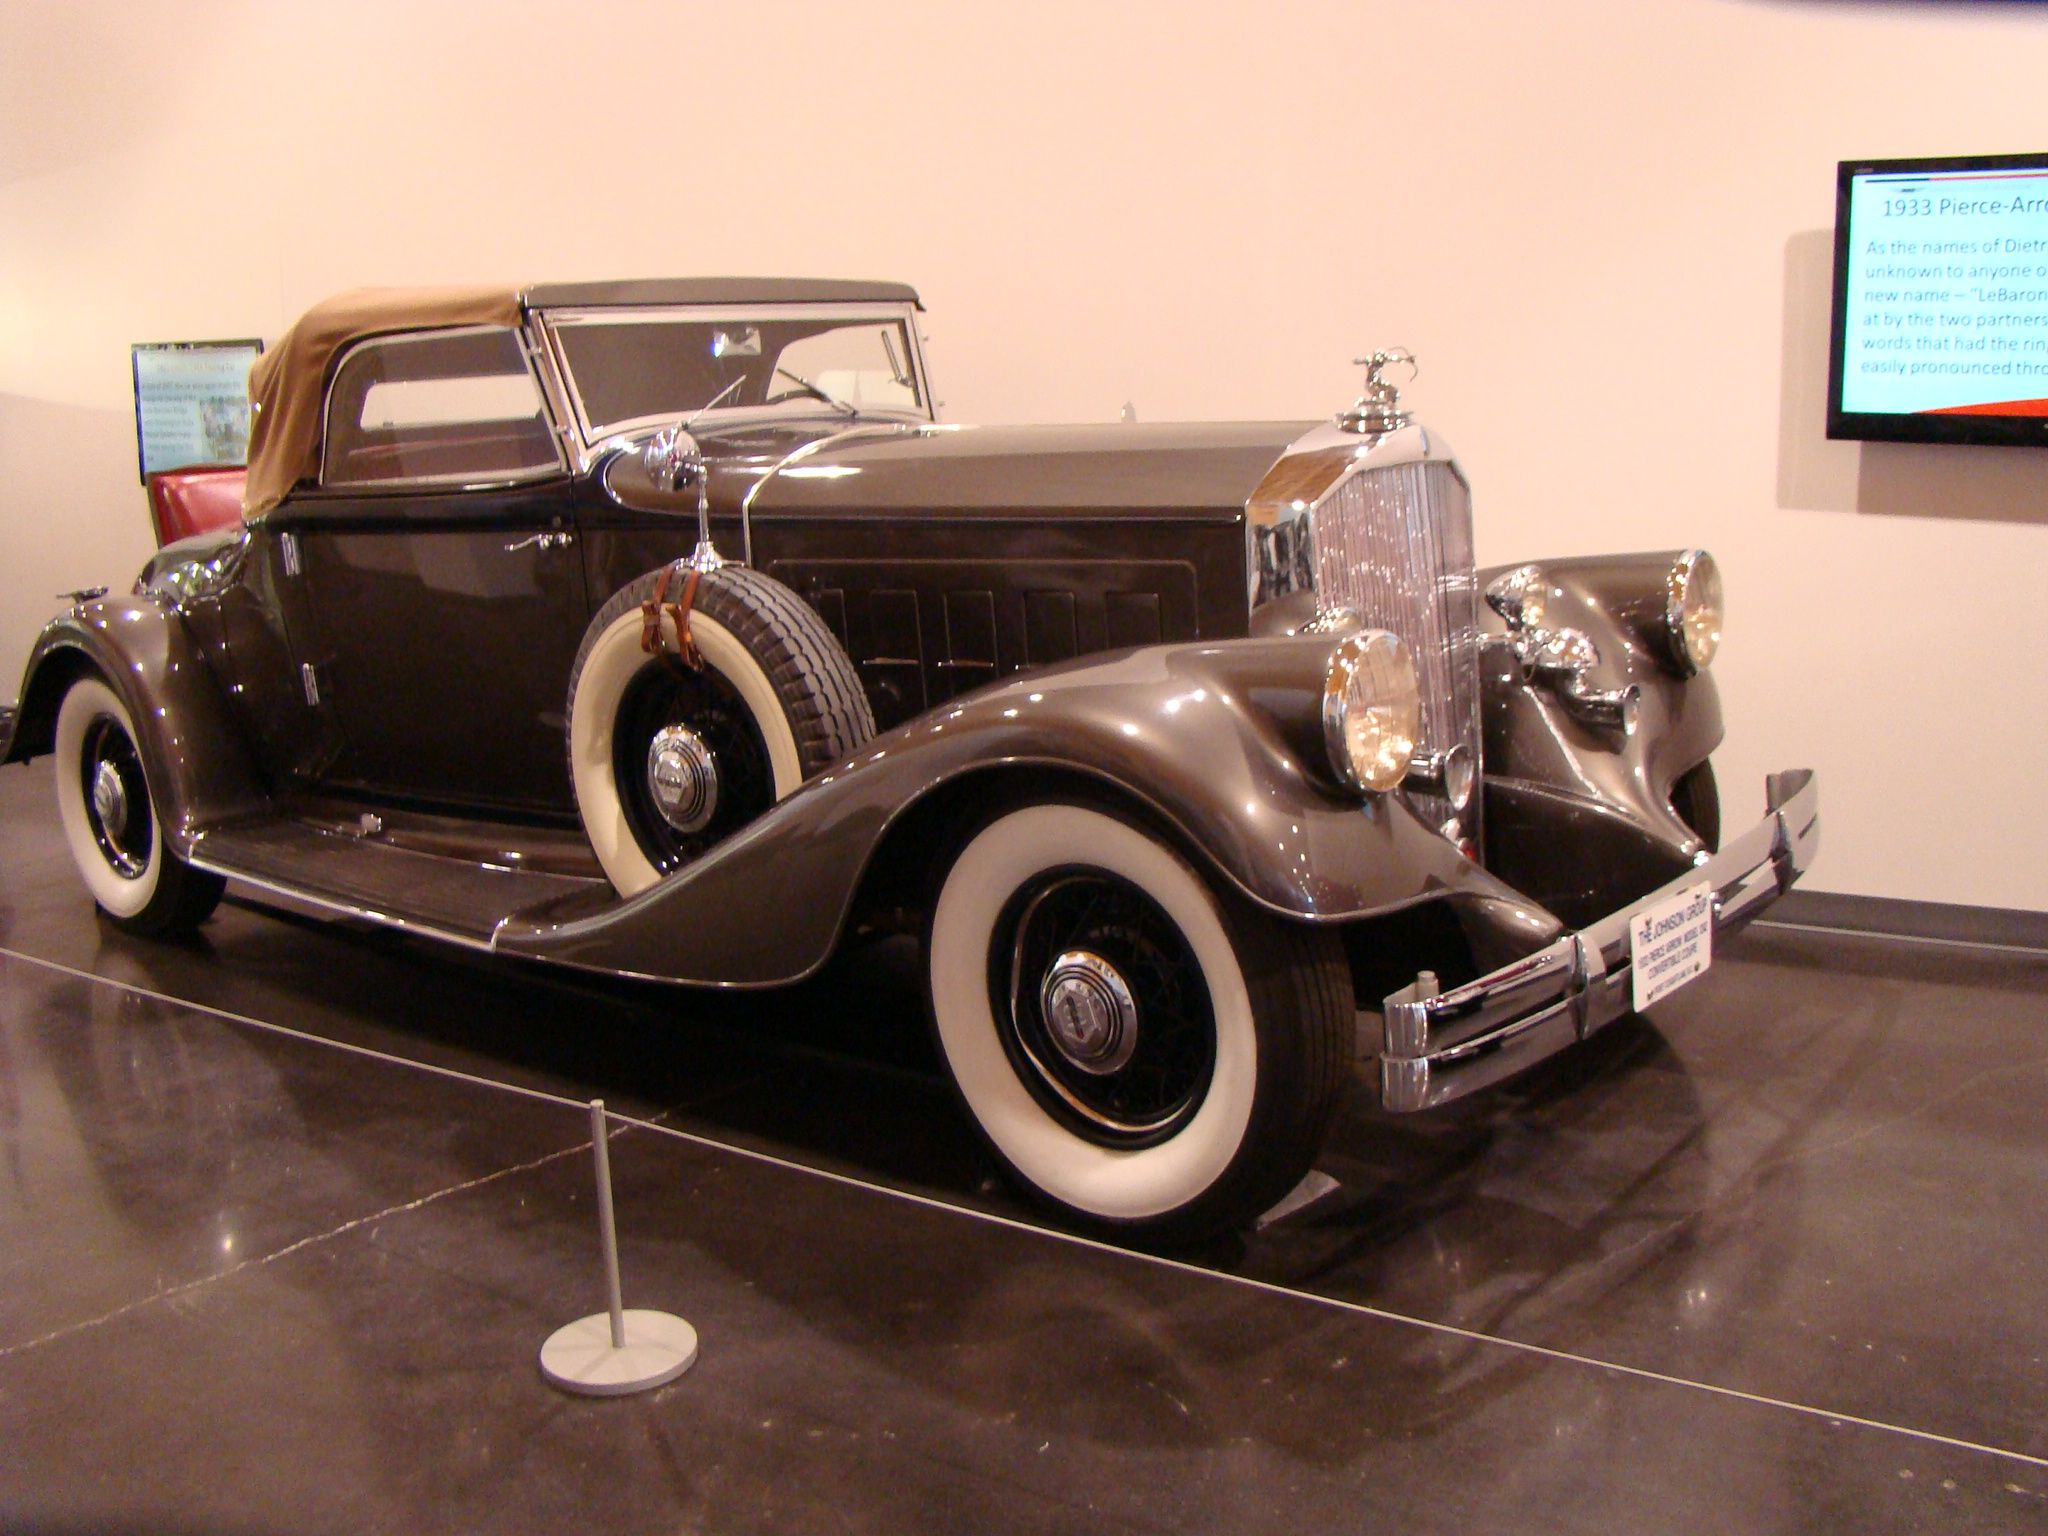 1933 Pierce Arrow Brought To You By The Car Insurance Agents At